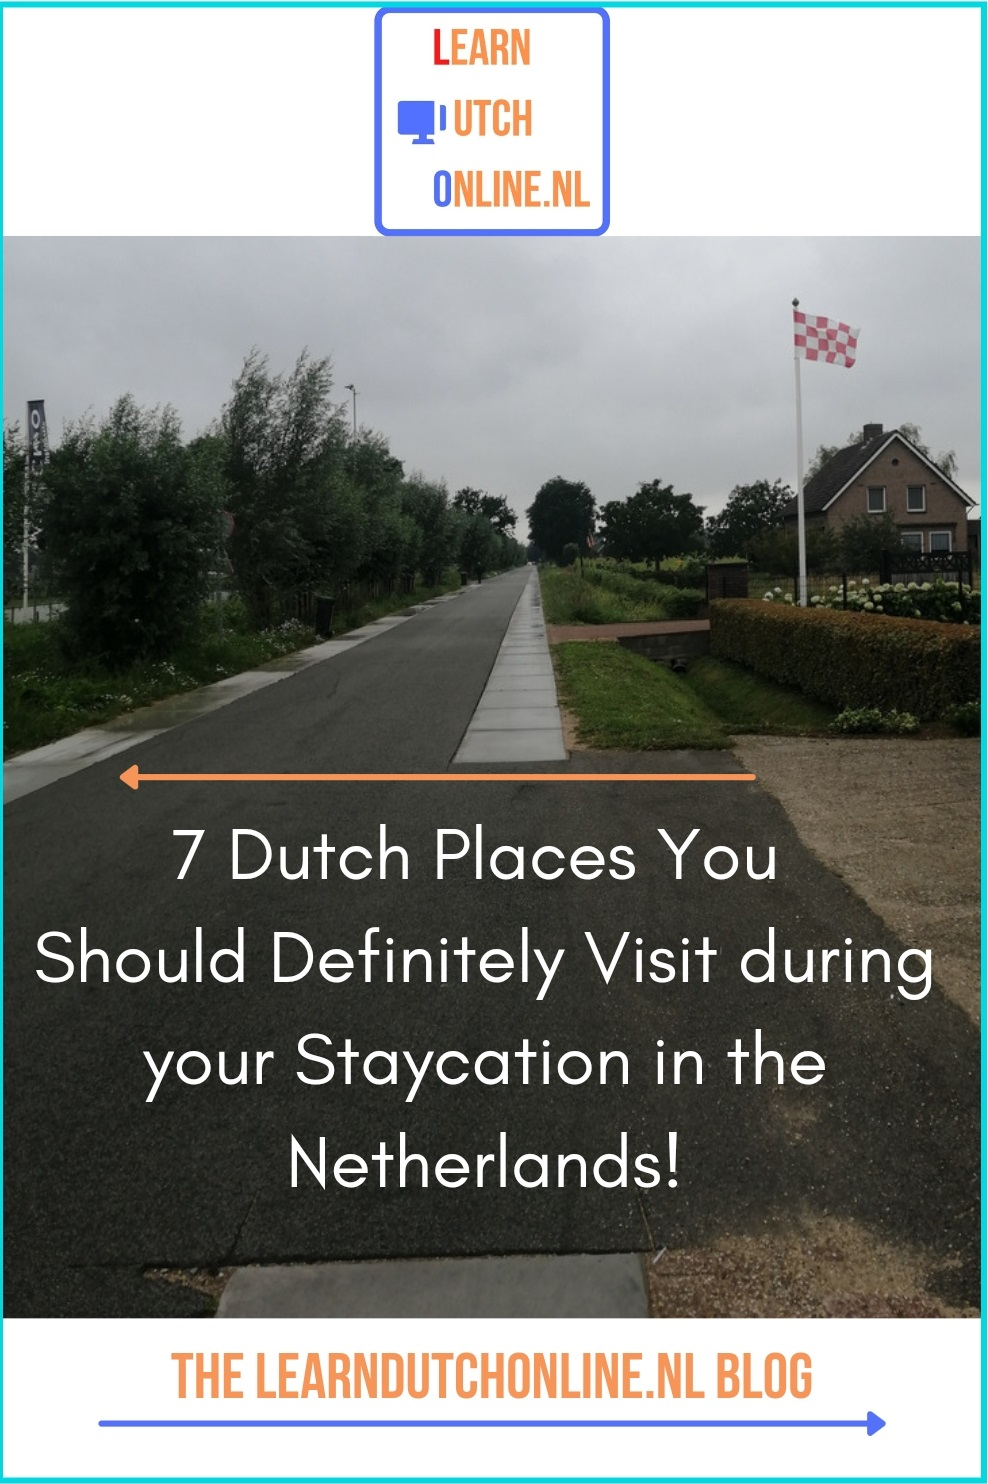 7 beautiful Dutch places you should visit during your staycation in the Netherlands!